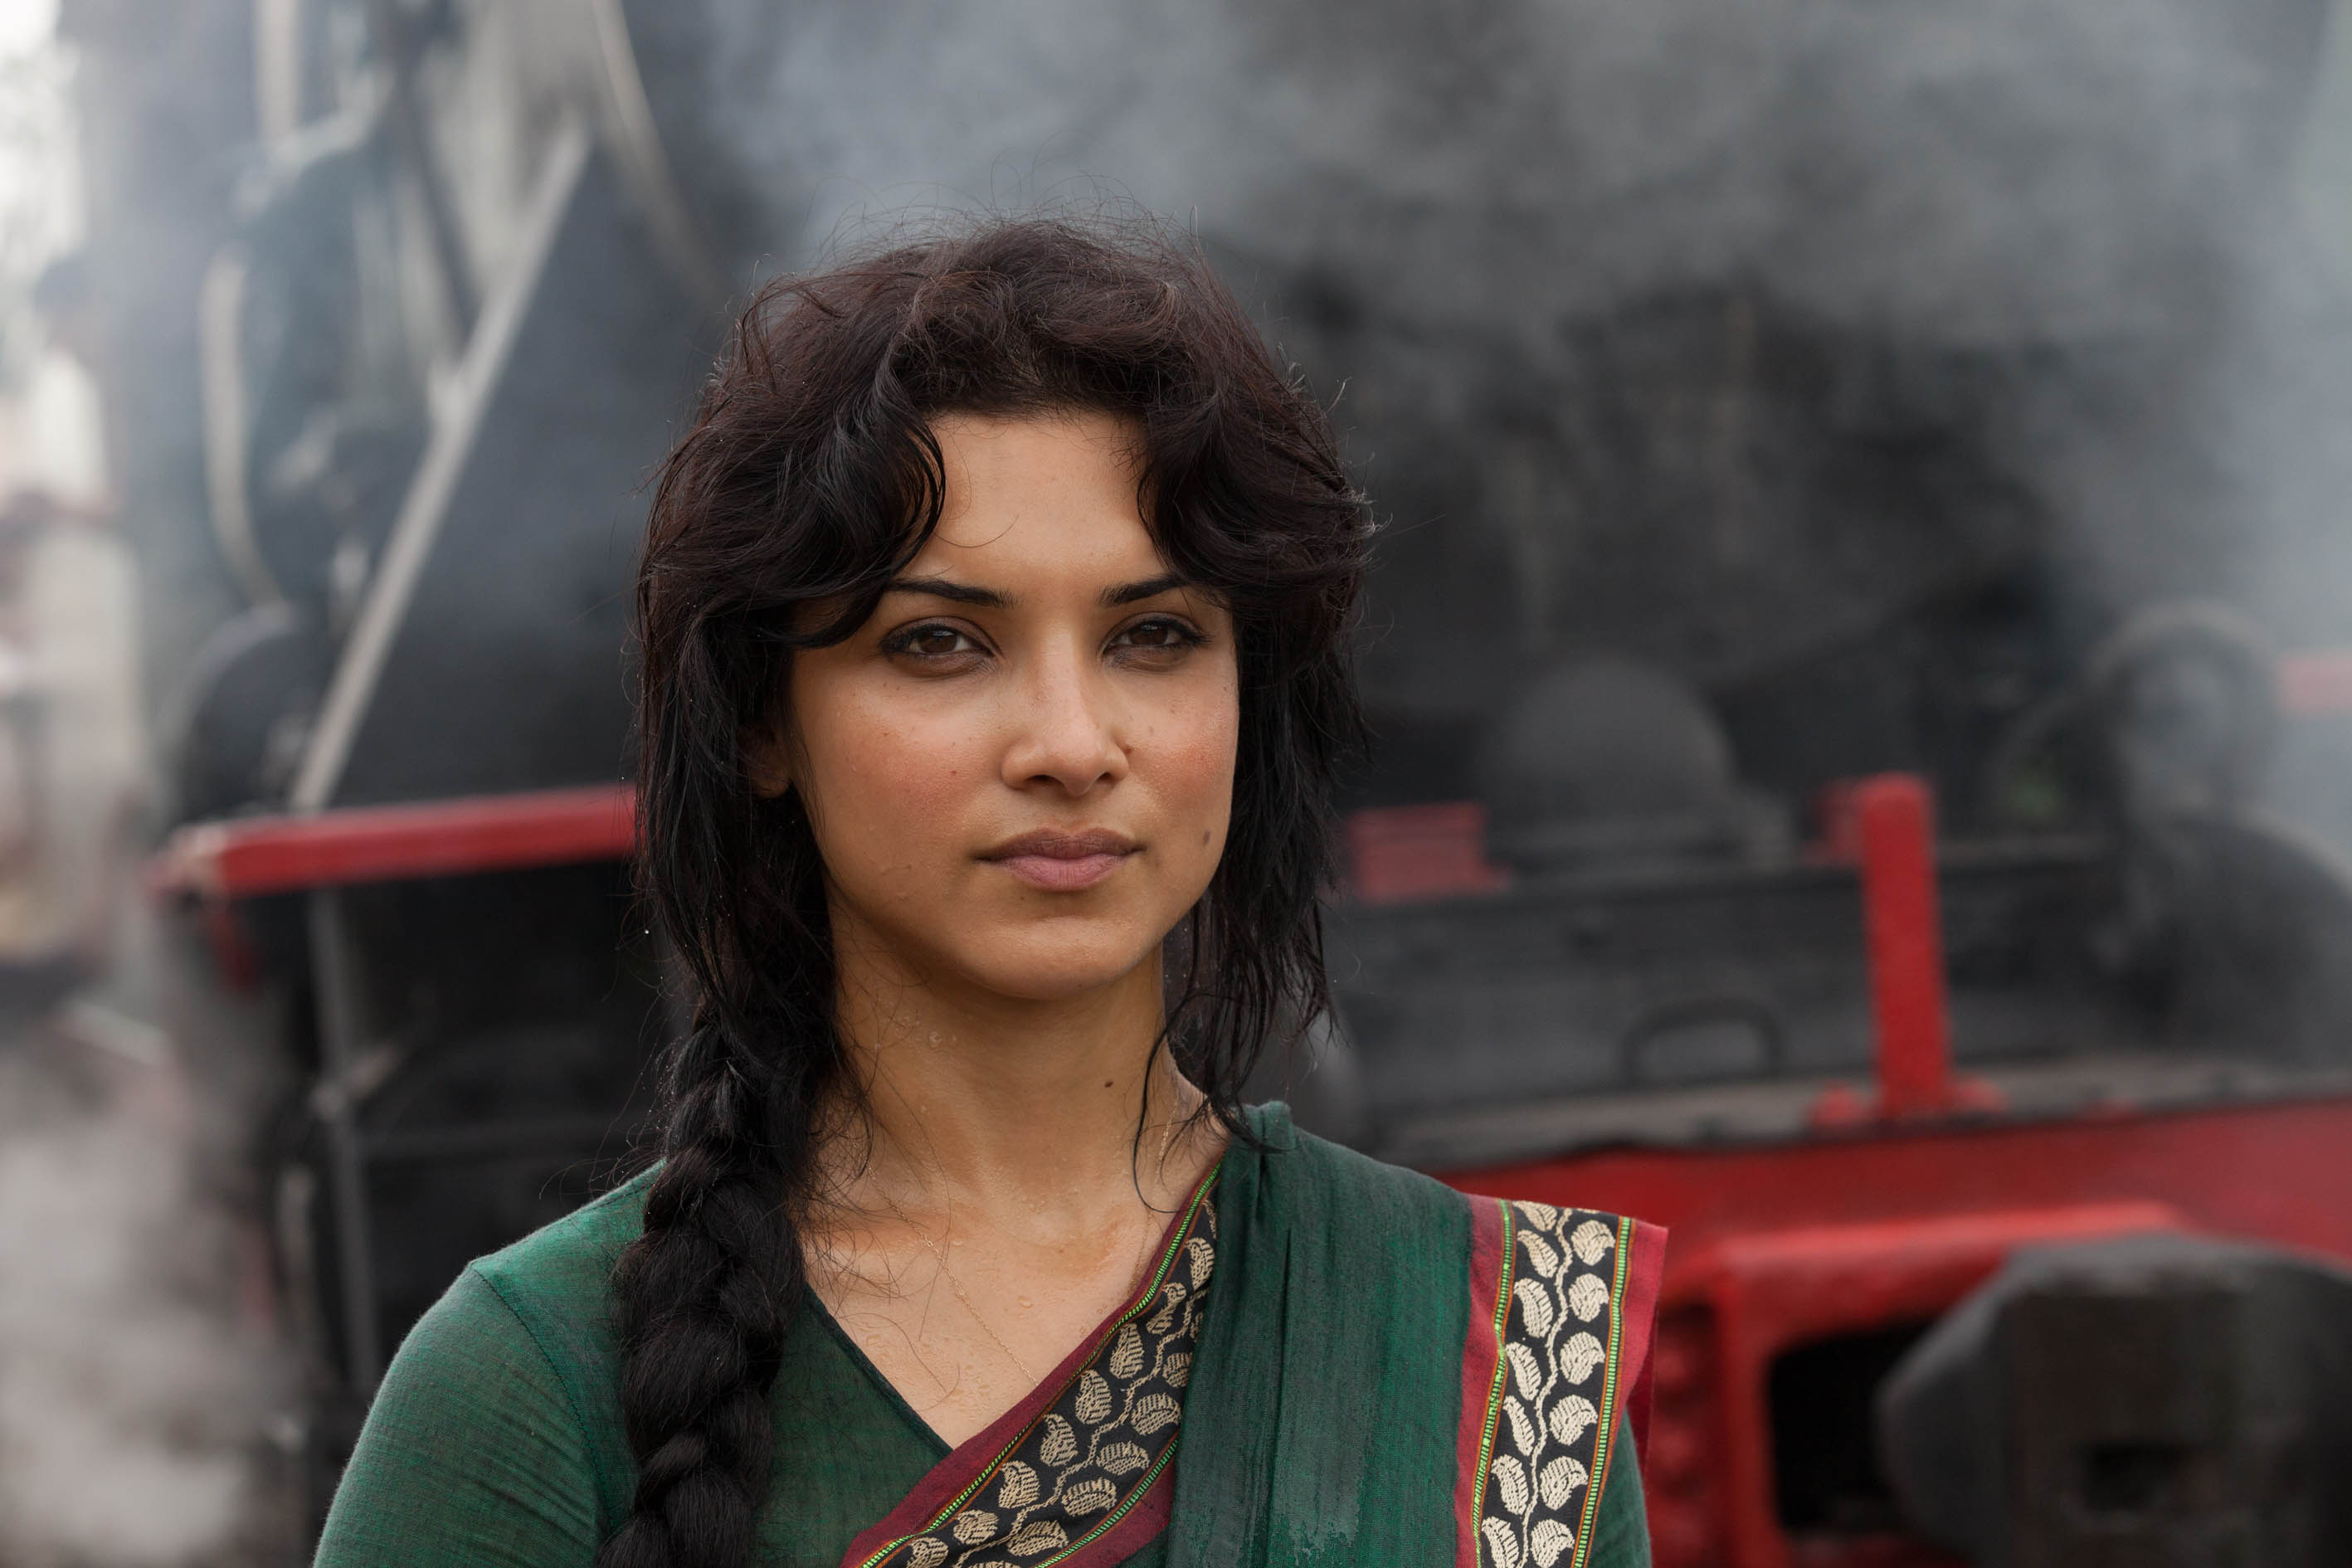 Amber Rose Revah Indian Summers >> 10 shows that prove TV drama is alive and kicking!   Film & TV, Mark Reynolds   Reader's Digest